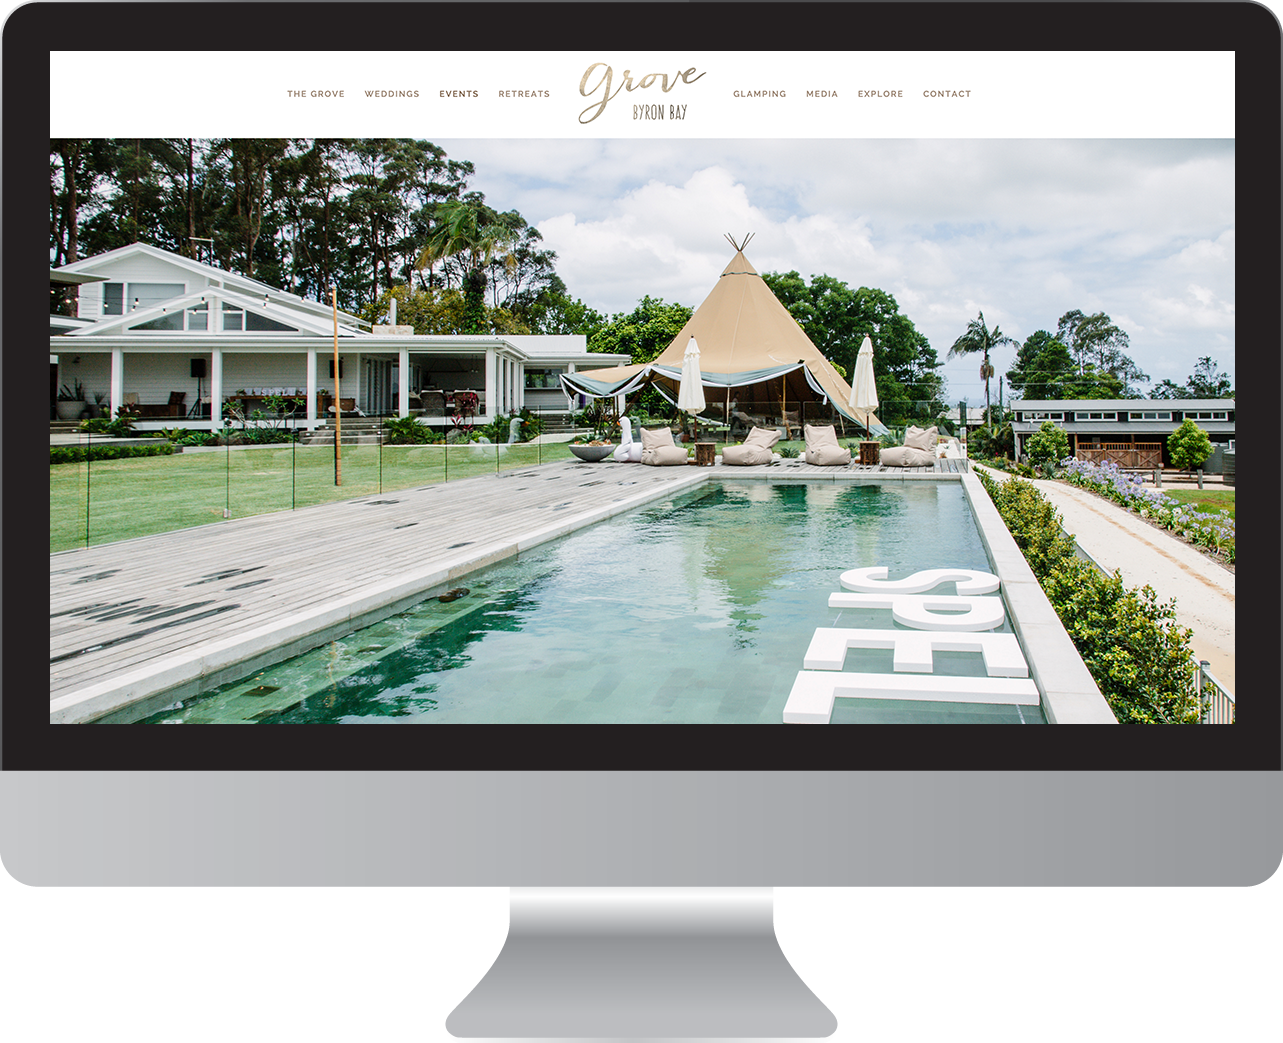 The Grove Byron Bay website design and branding